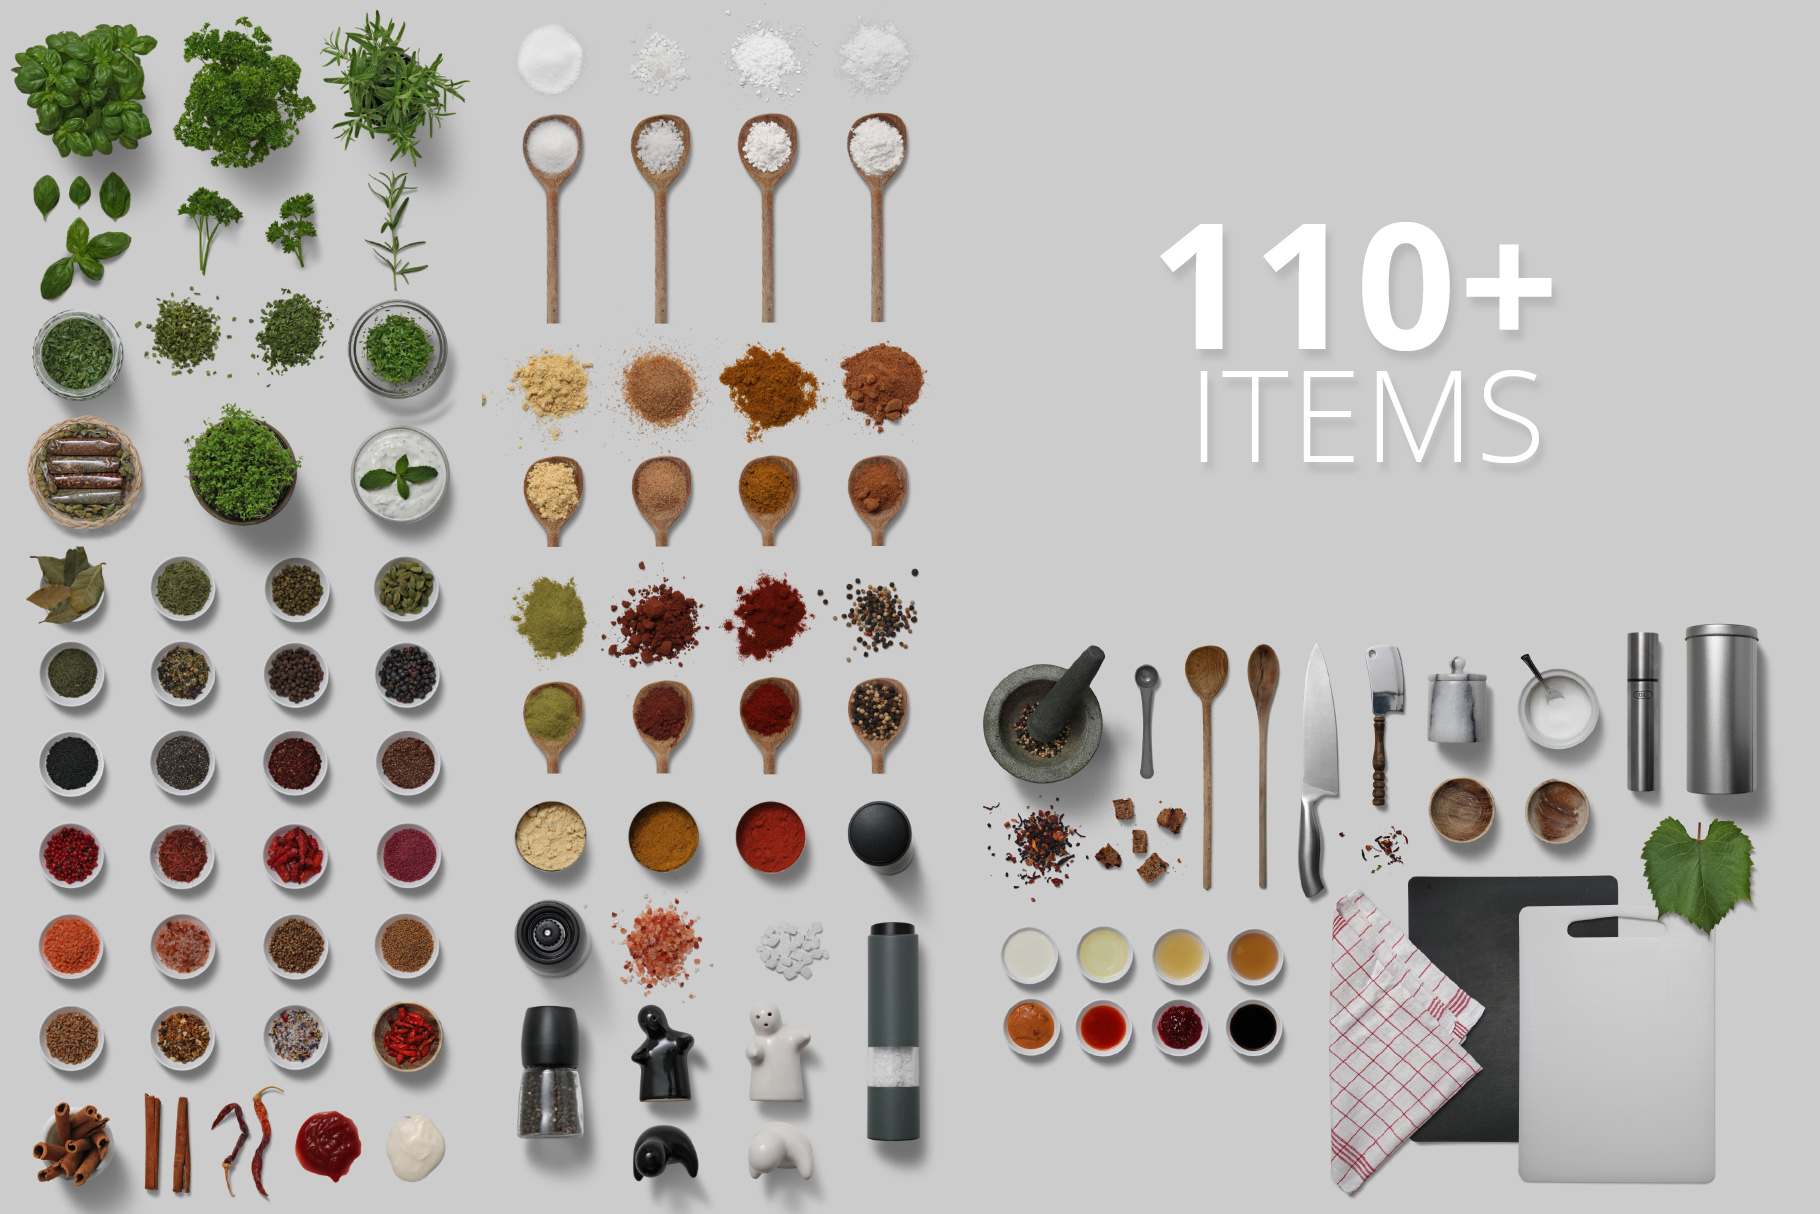 Herbs & Spices - Isolated Food Items example image 2